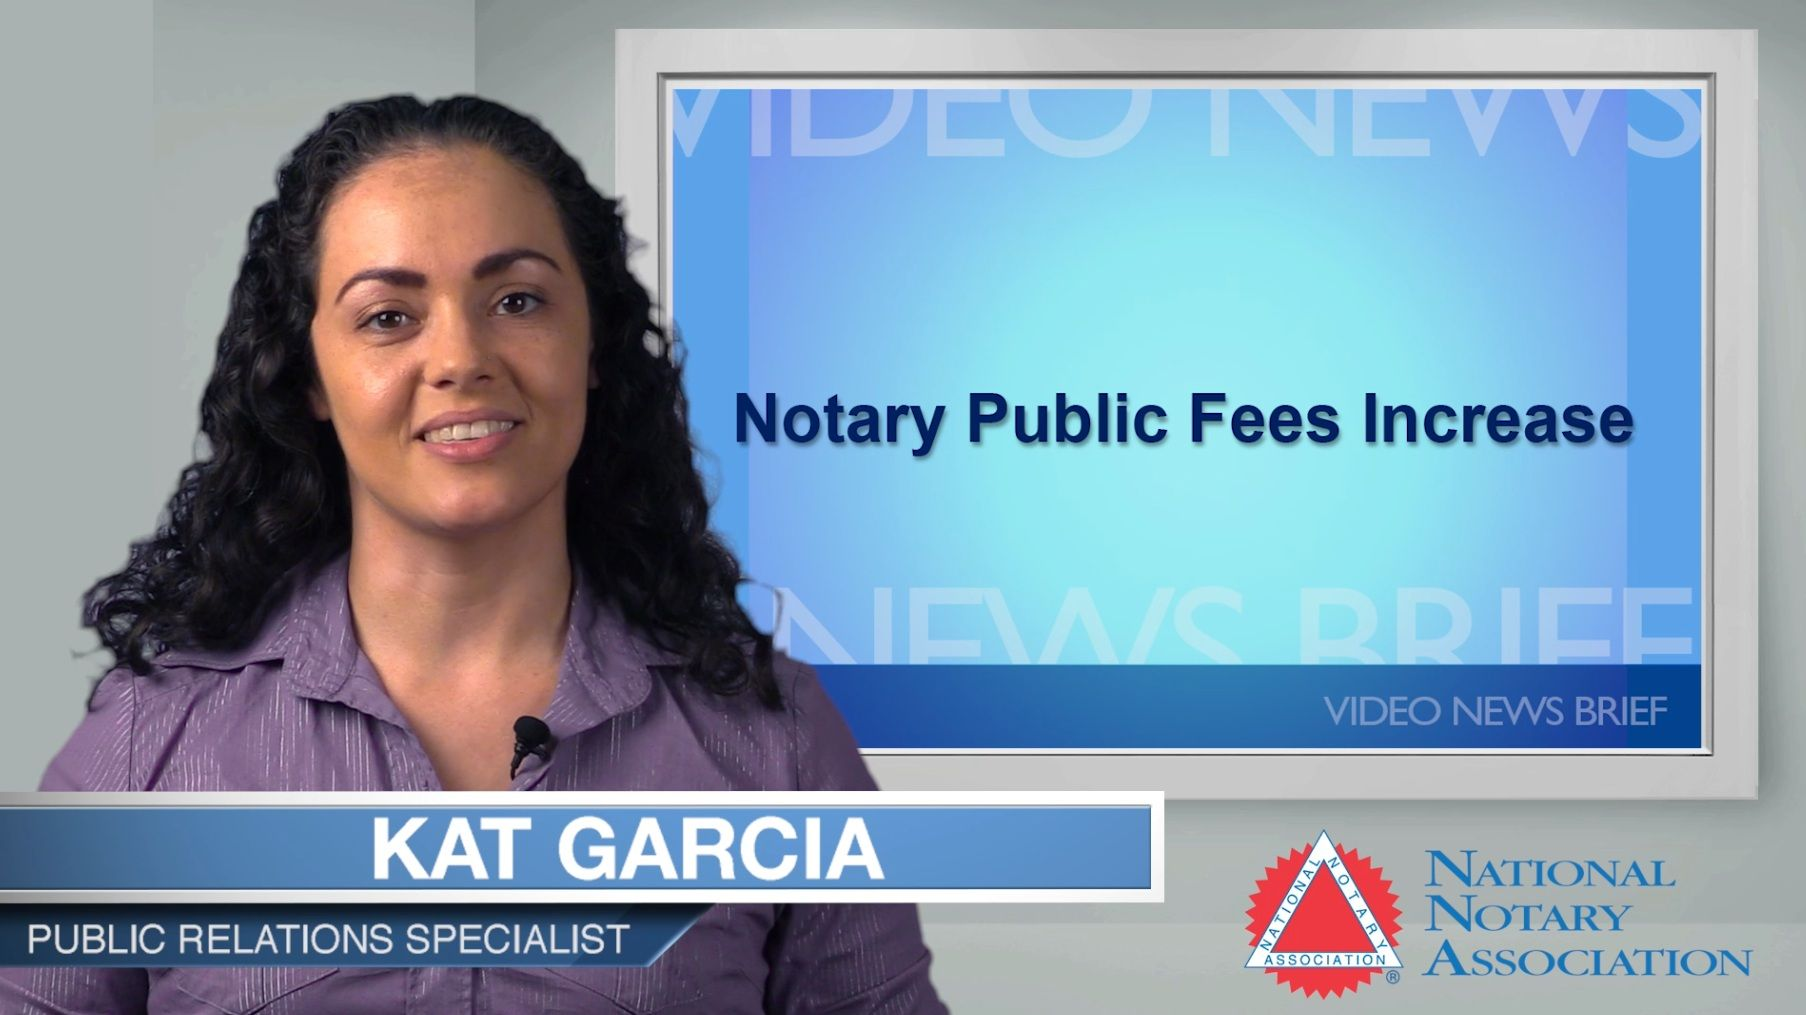 Hear an update on which states are raising Notary fees